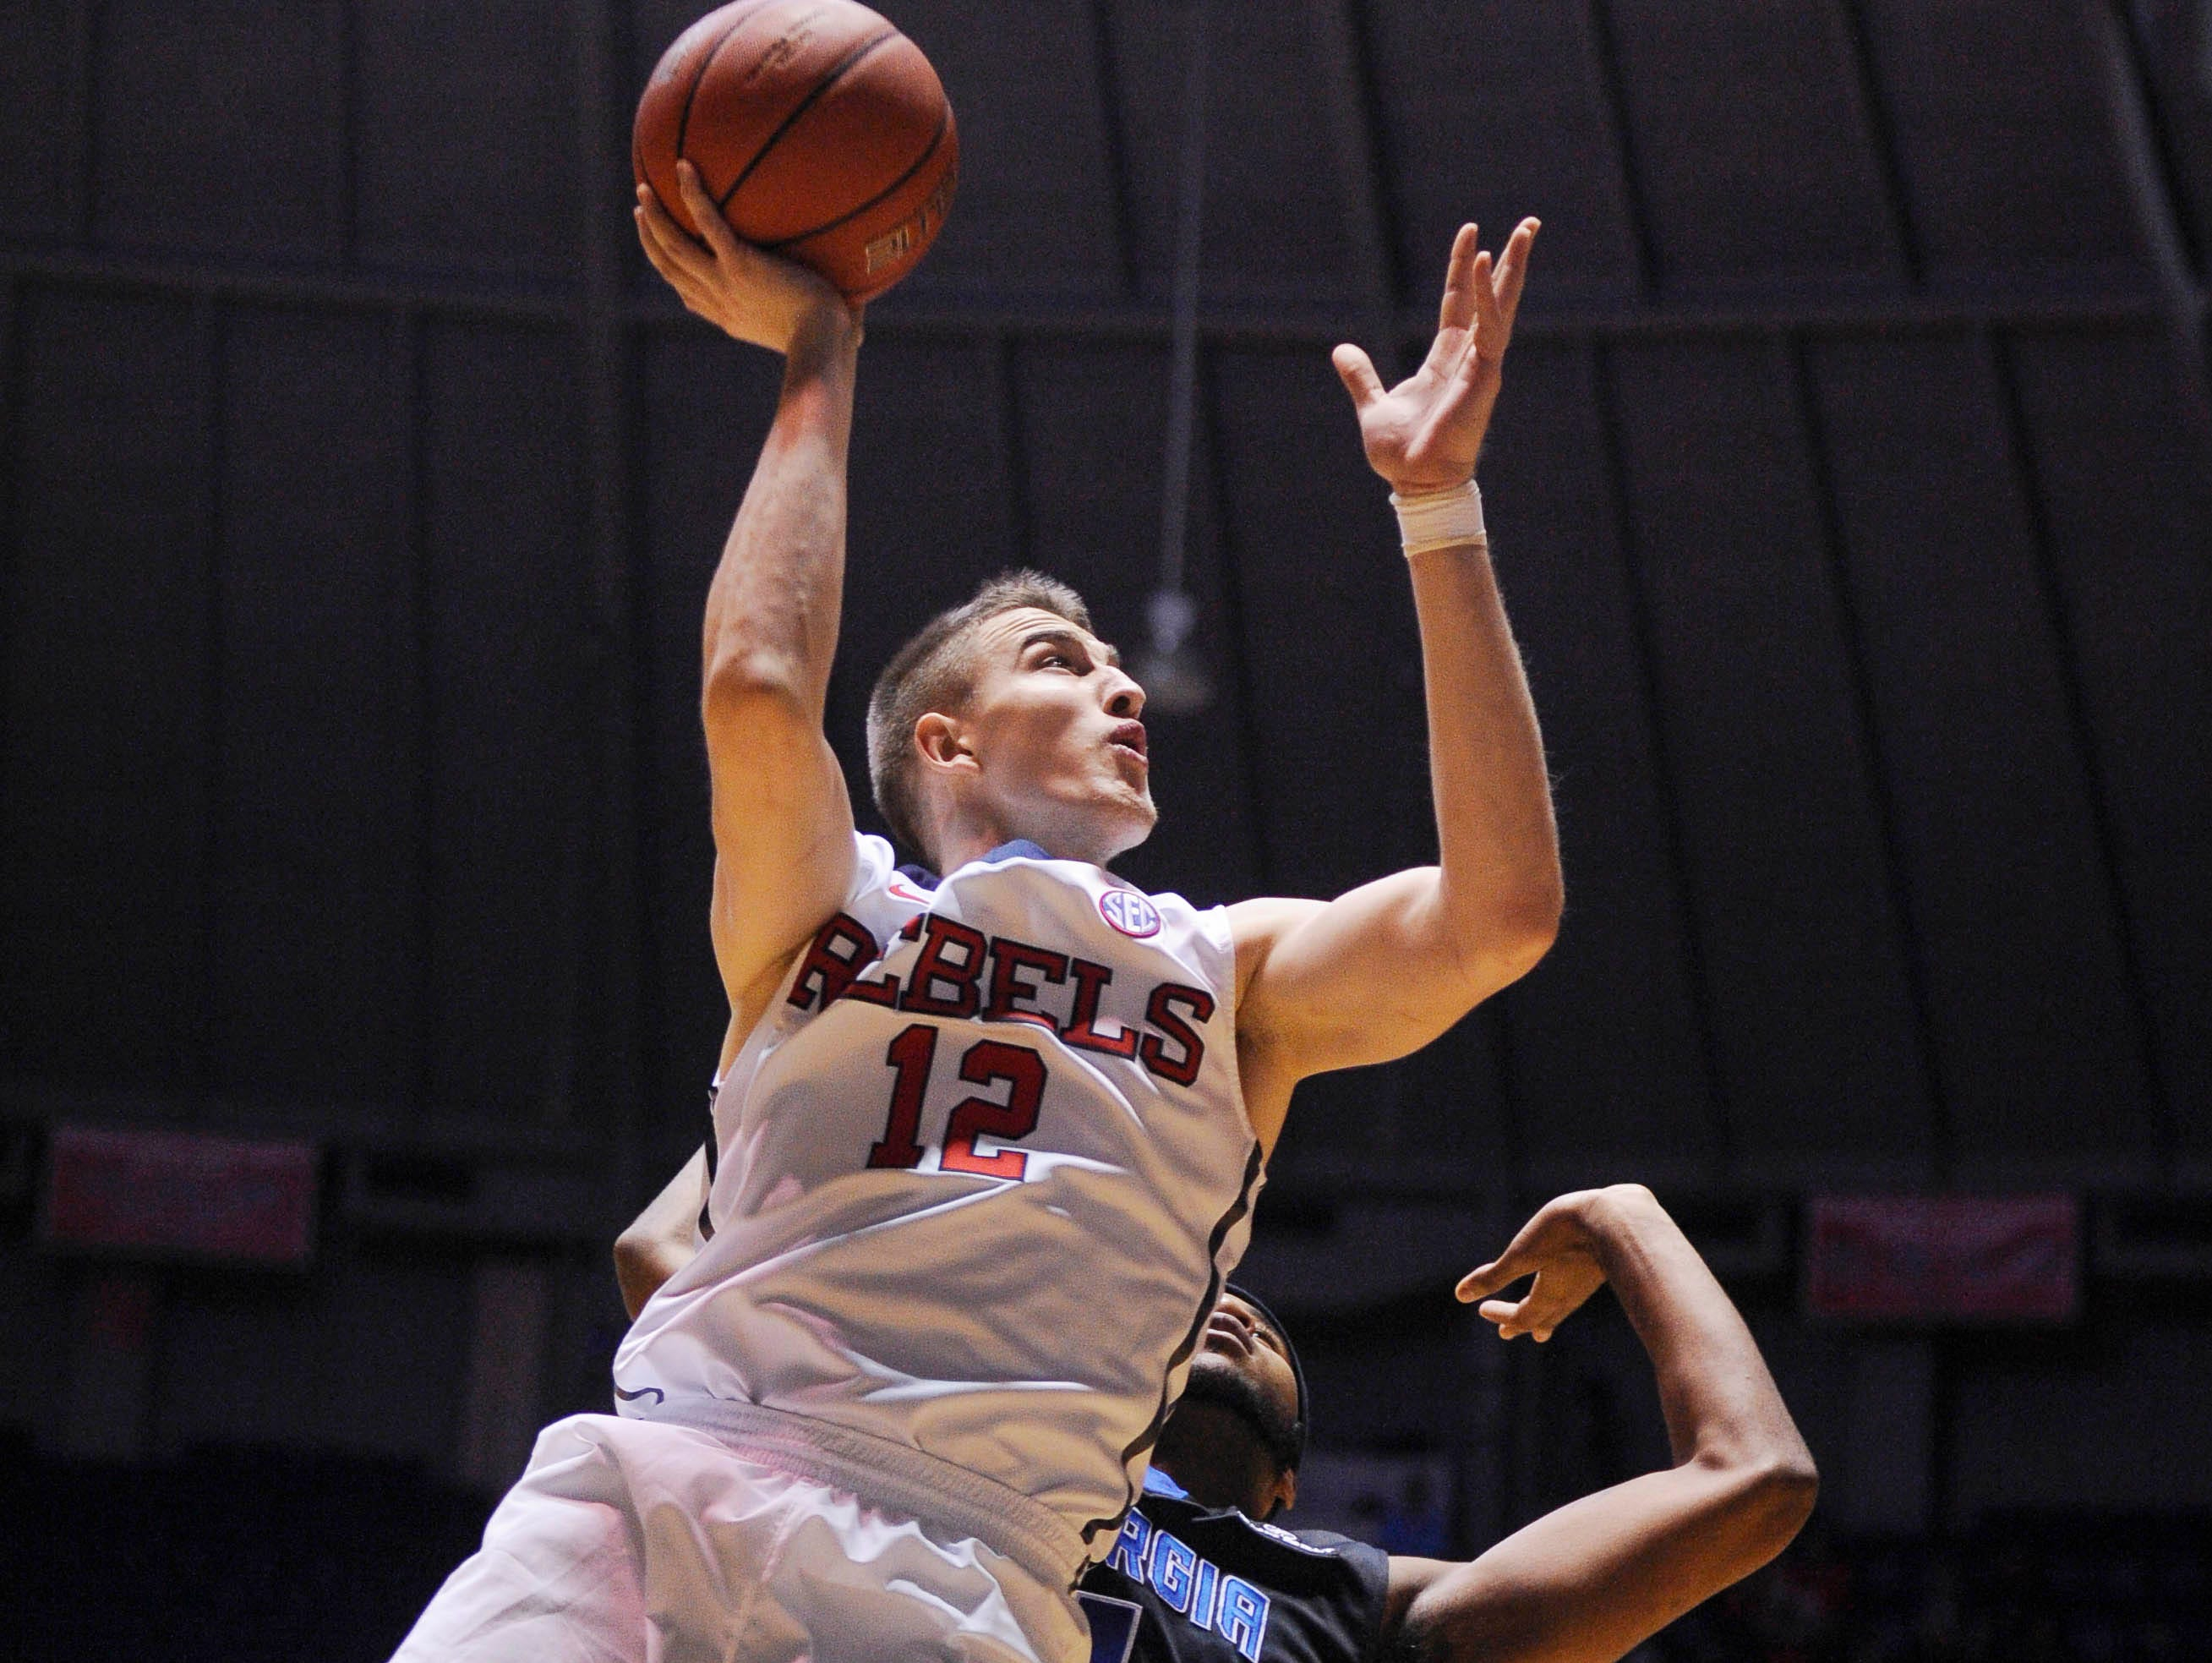 Ole Miss forward Tomasz Gielo had a strong performance for the Rebels on Wednesday afternoon against Georgia State.